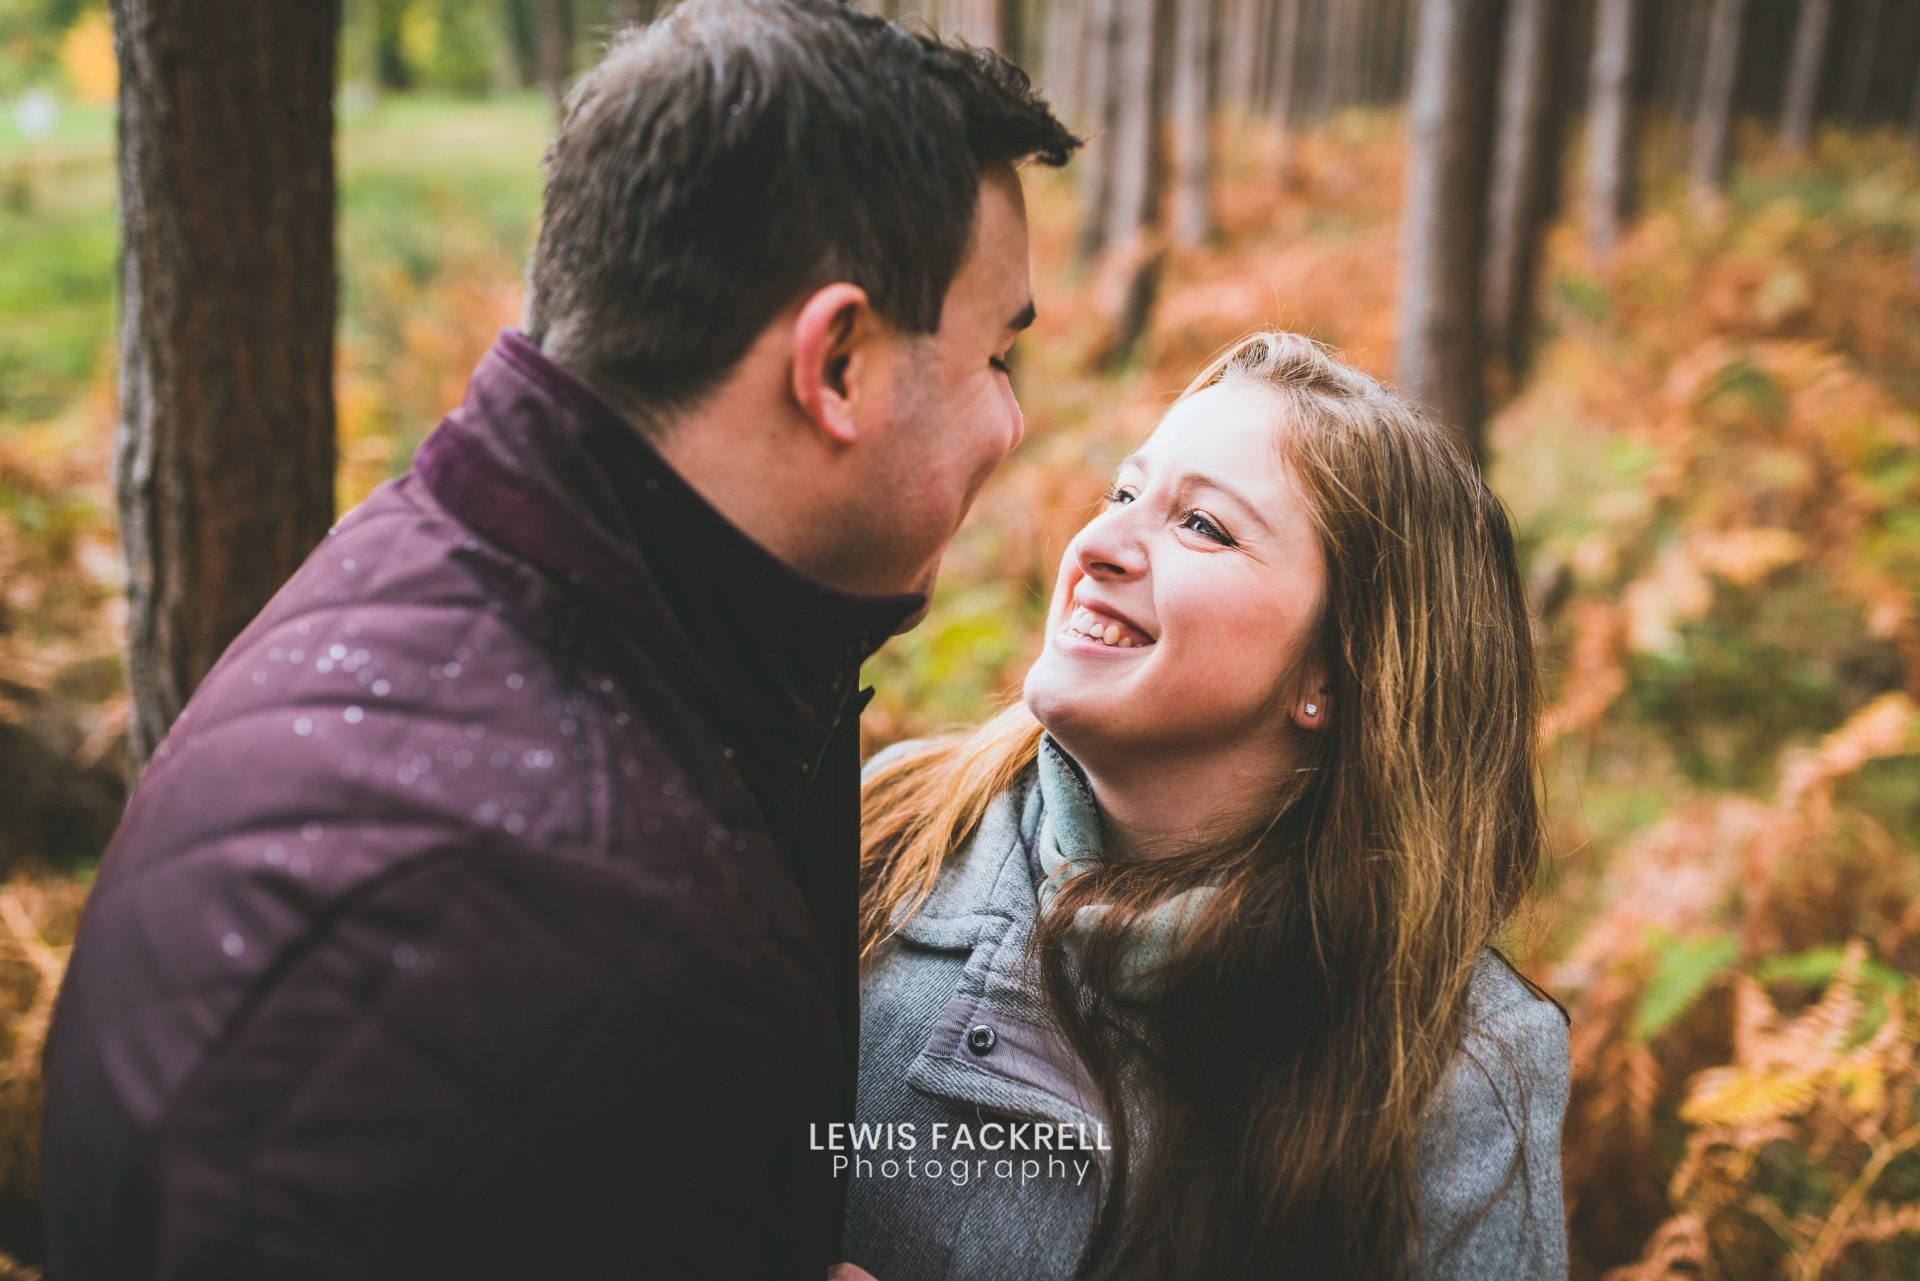 Stafford pre-wedding photography in the woods with Aleysha & Adam